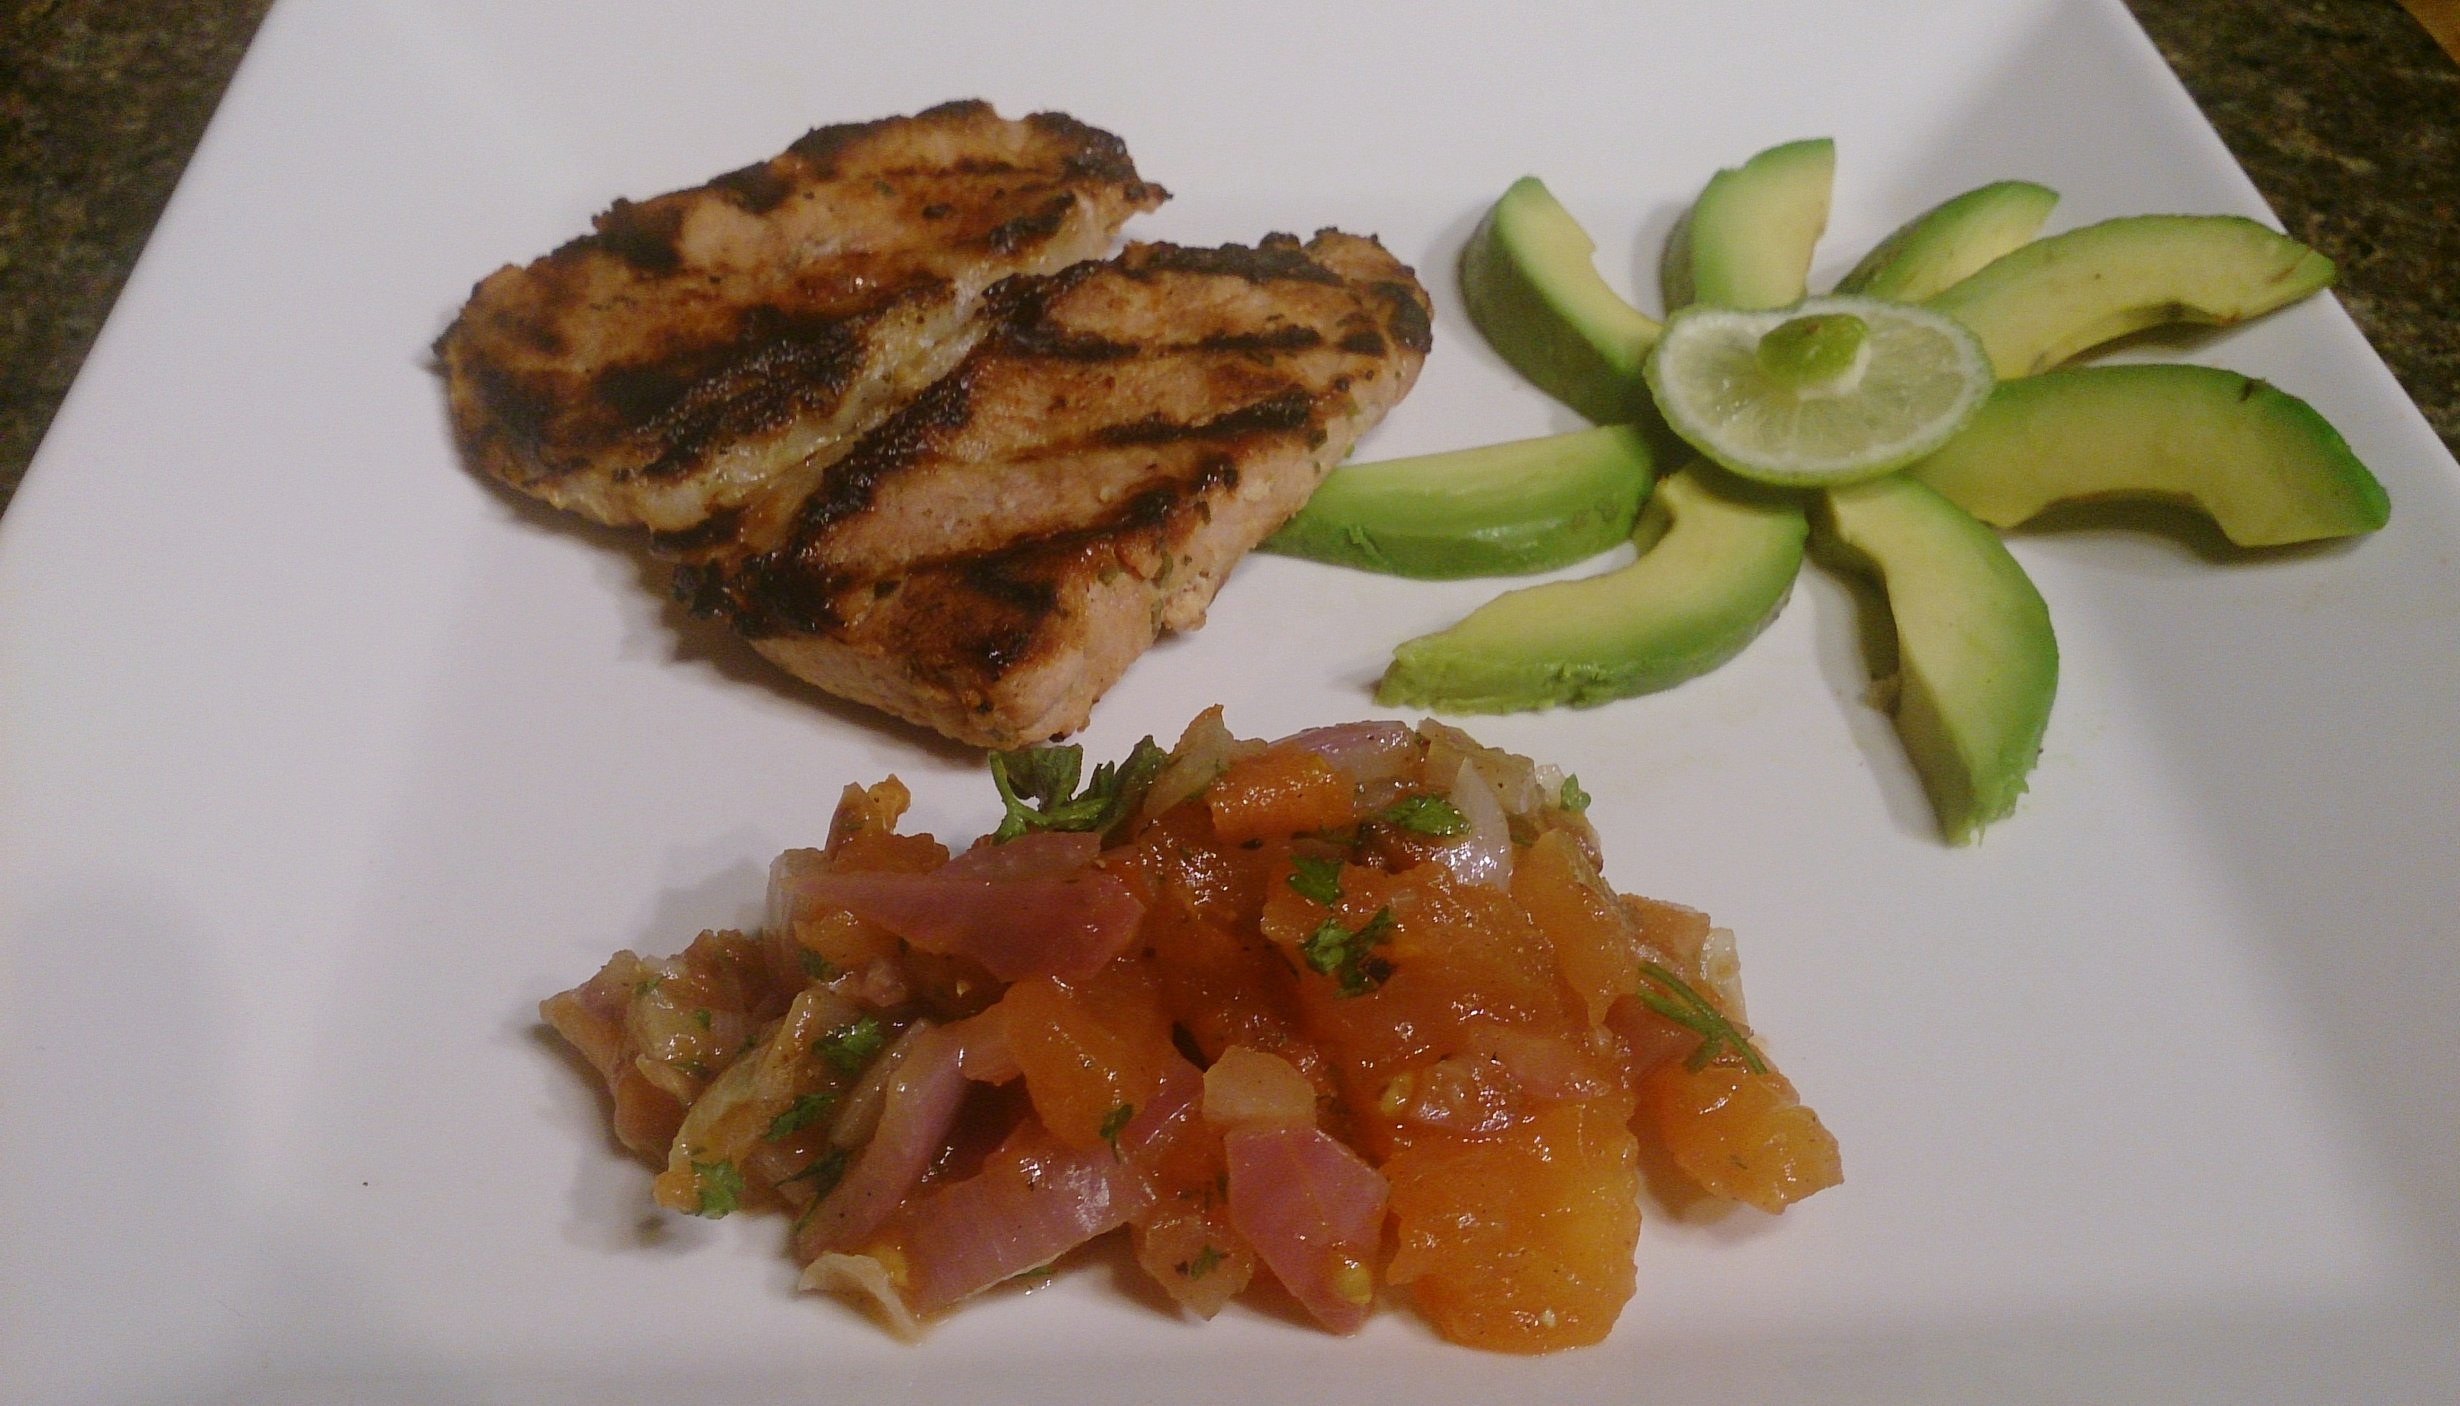 Poc Chuc and Chiltomate Salsa - Perfect for the Grill